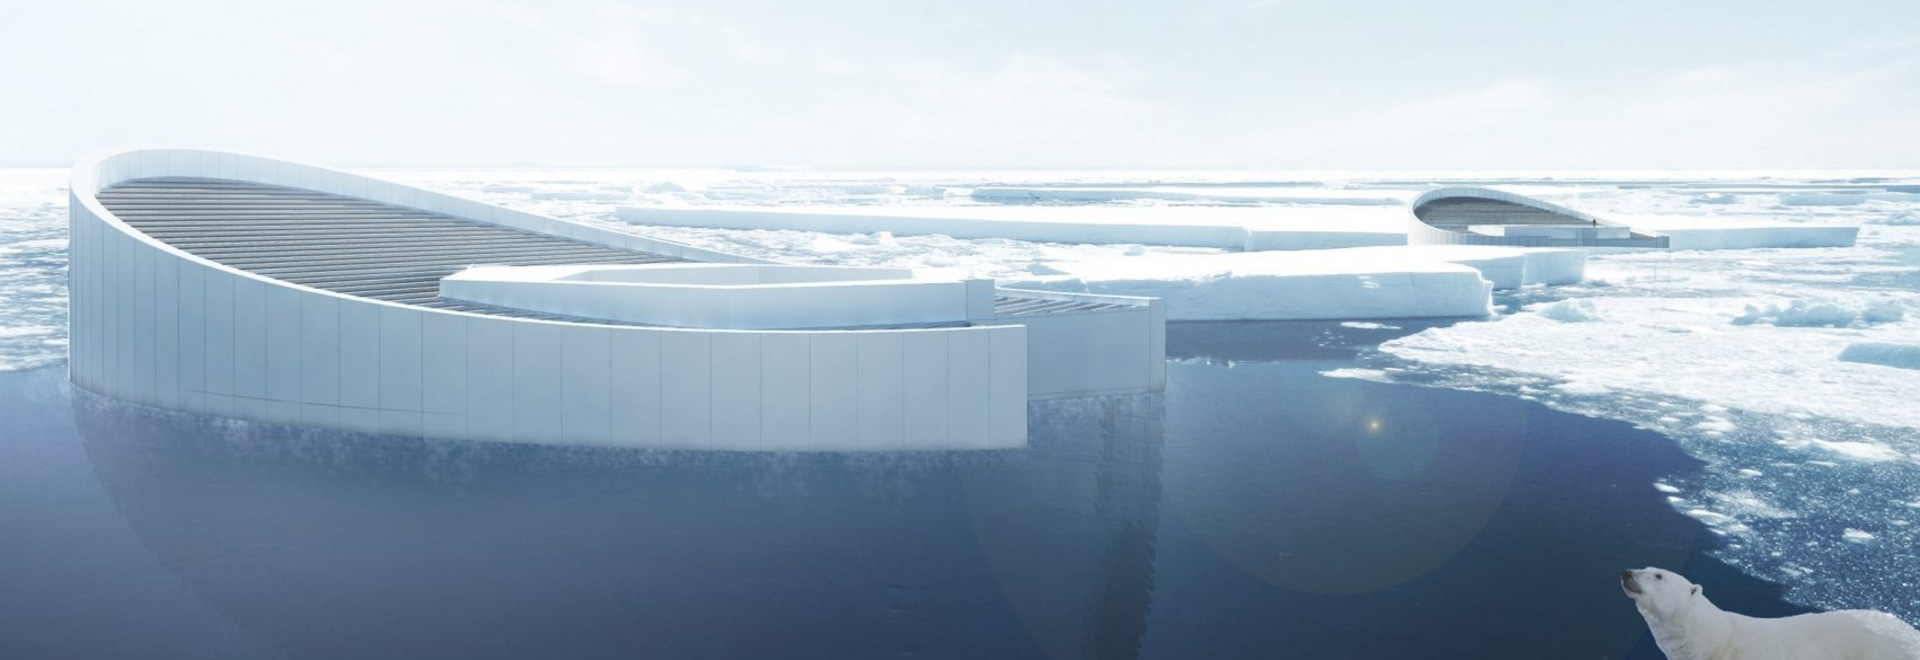 The designers propose a series of submarine-like vessels to create miniature icebergs